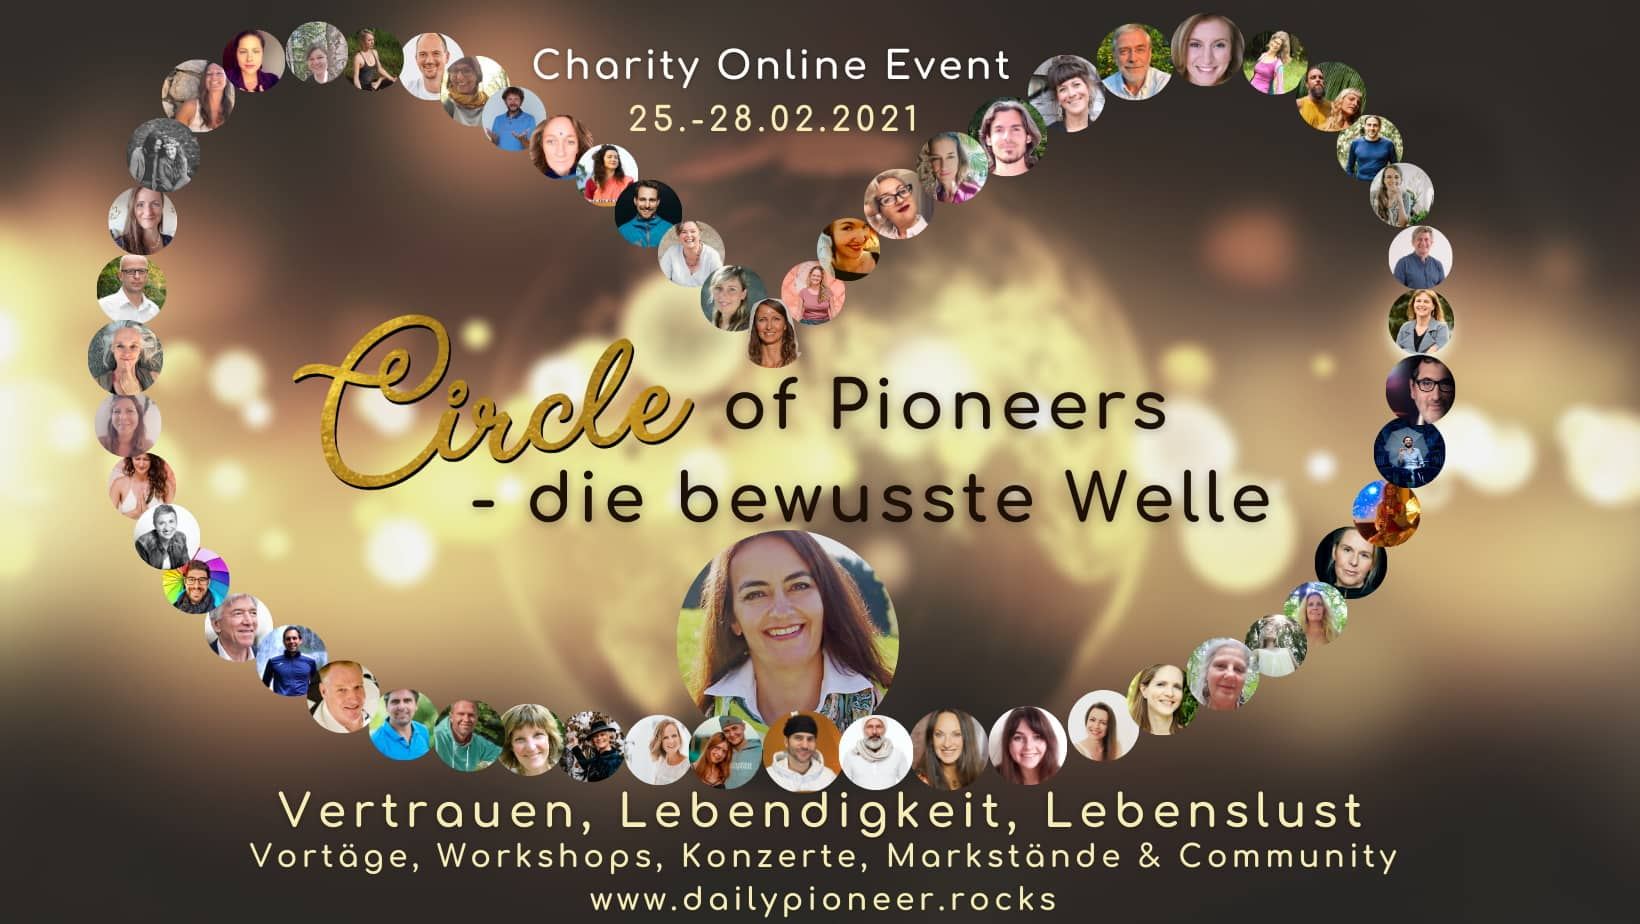 Circle of Pioneers - charity Event mit celine von Knobelsdorff